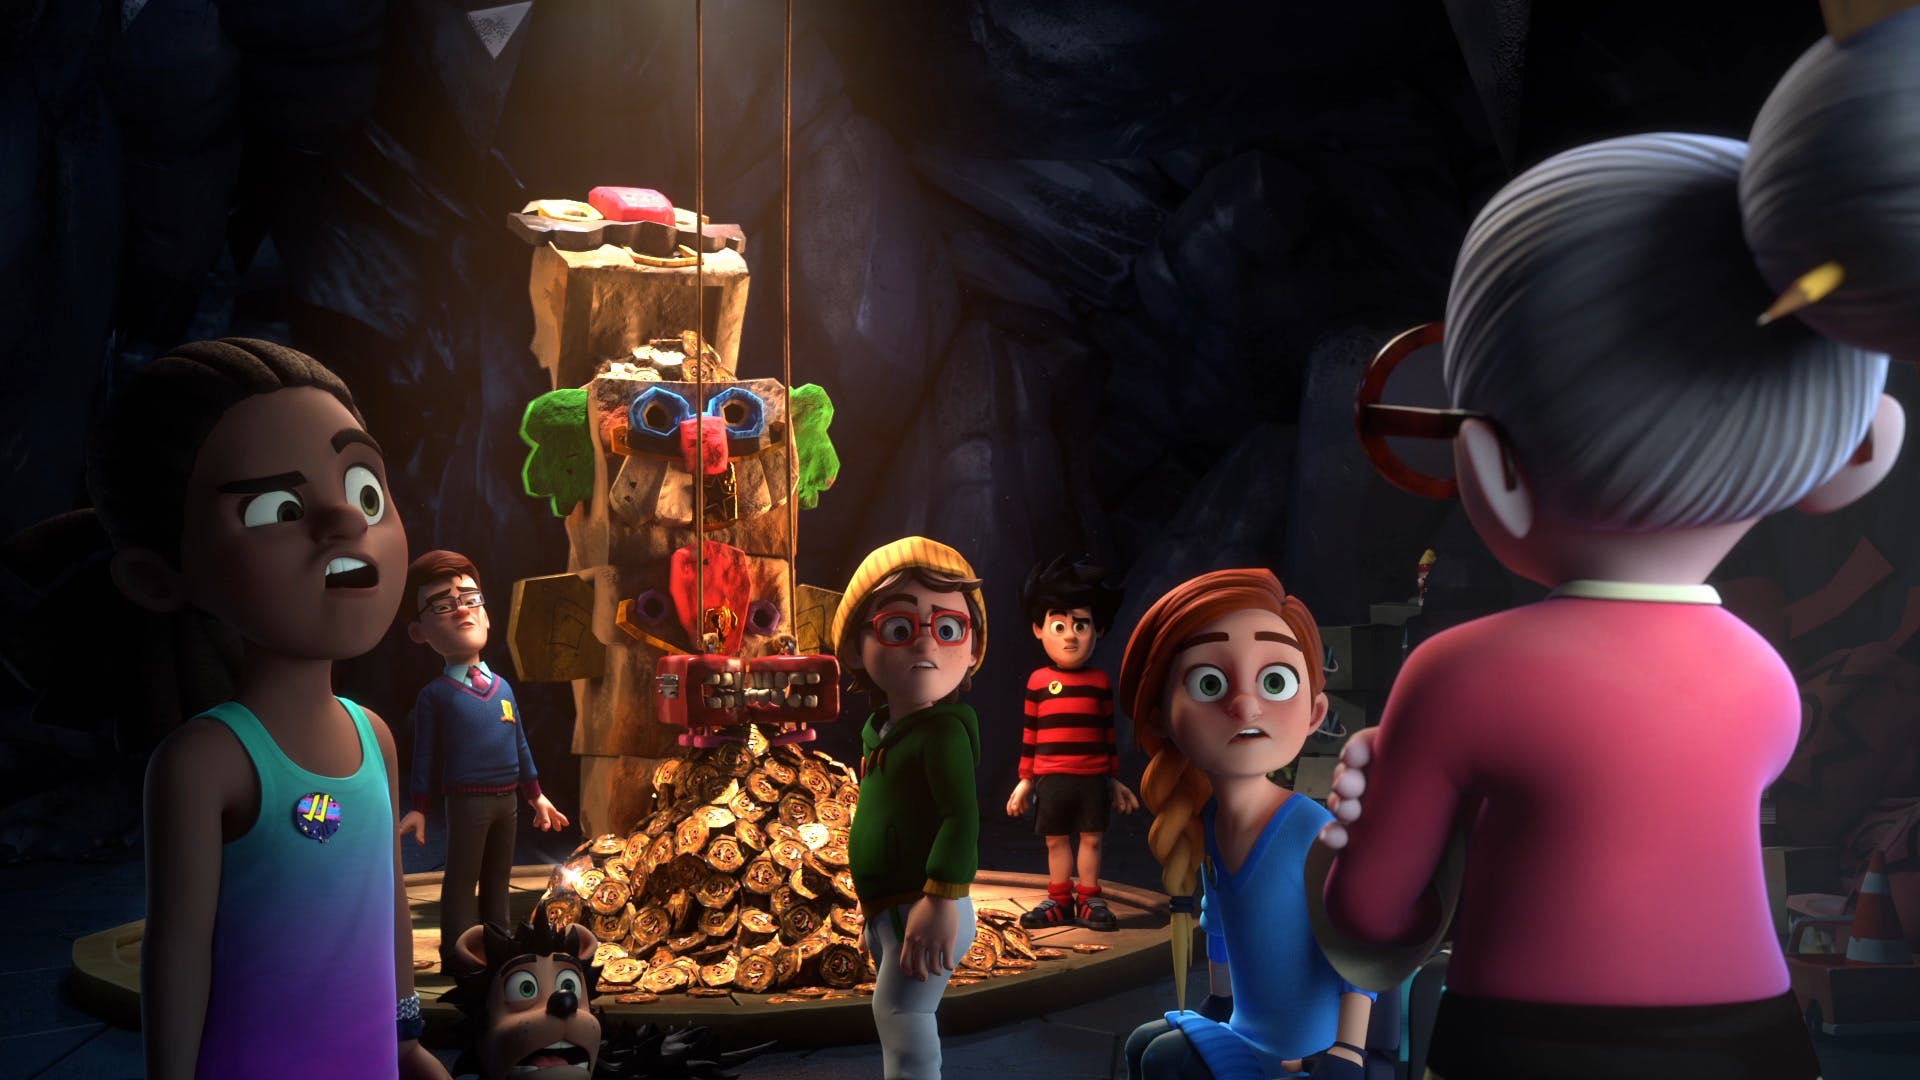 The gang goes on an adventure to find treasure in a hidden part of beanotown